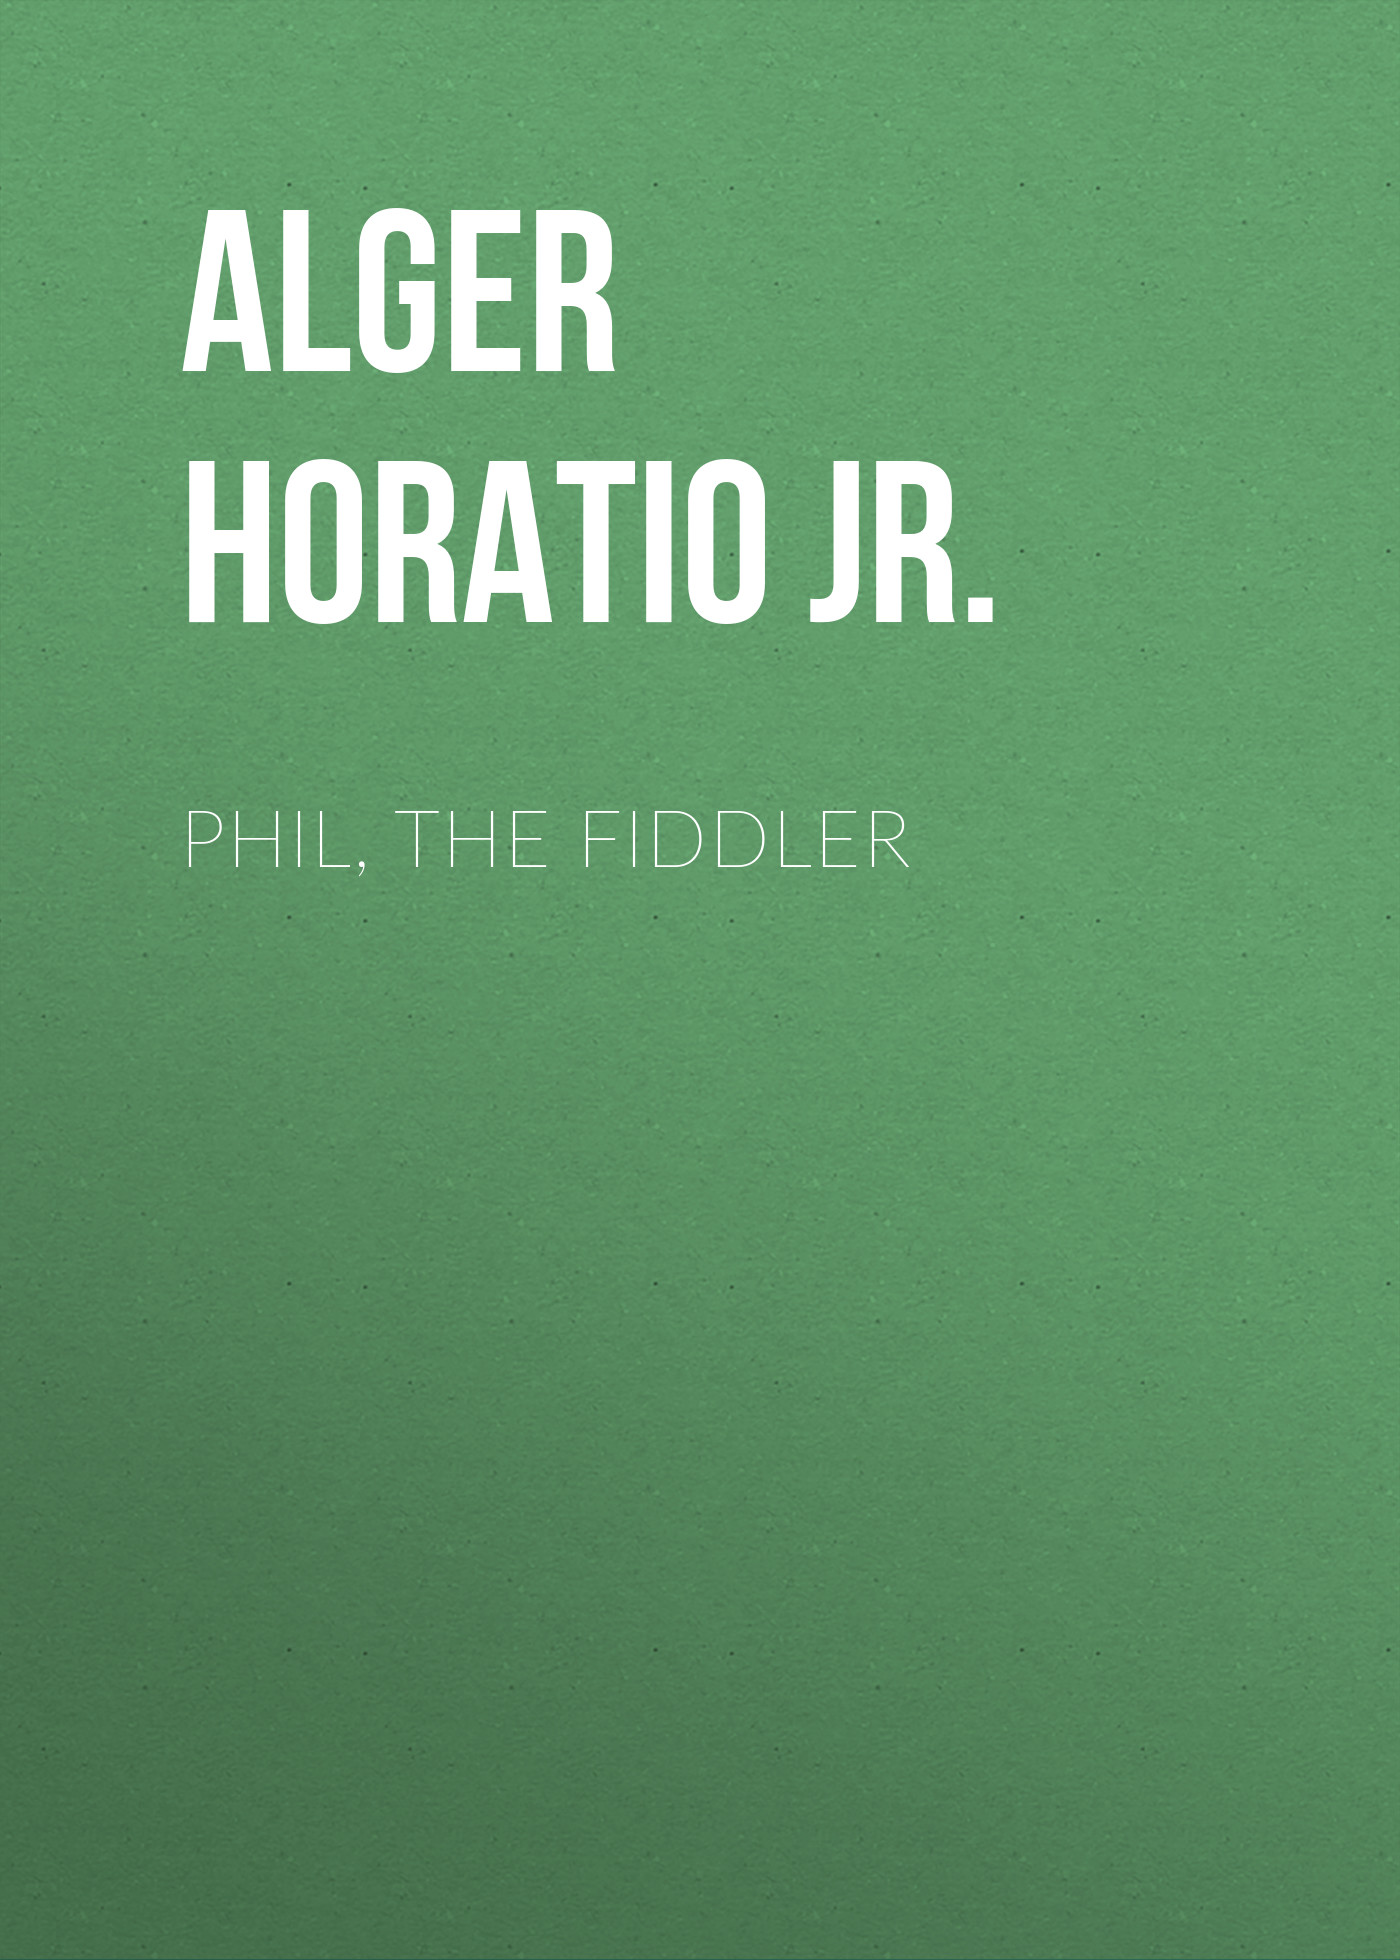 Alger Horatio Jr. Phil, the Fiddler скрипка shantou gepai скрипка 369b